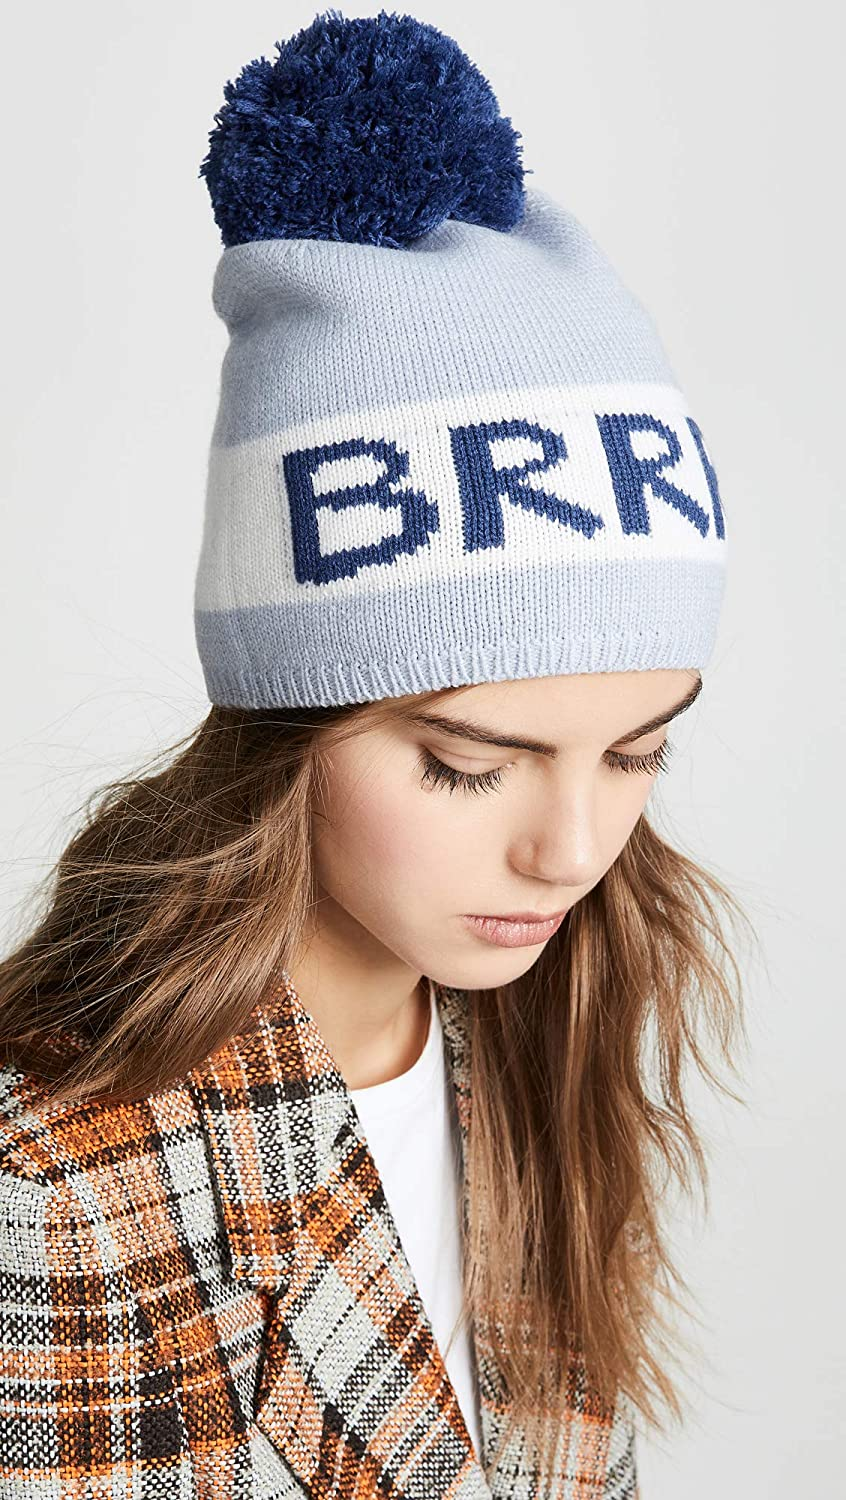 c56c1ca0352c8d ... Kate Spade New York Womens BRRR Beanie Hat Stormy Blue One Size Global  Brands Group-